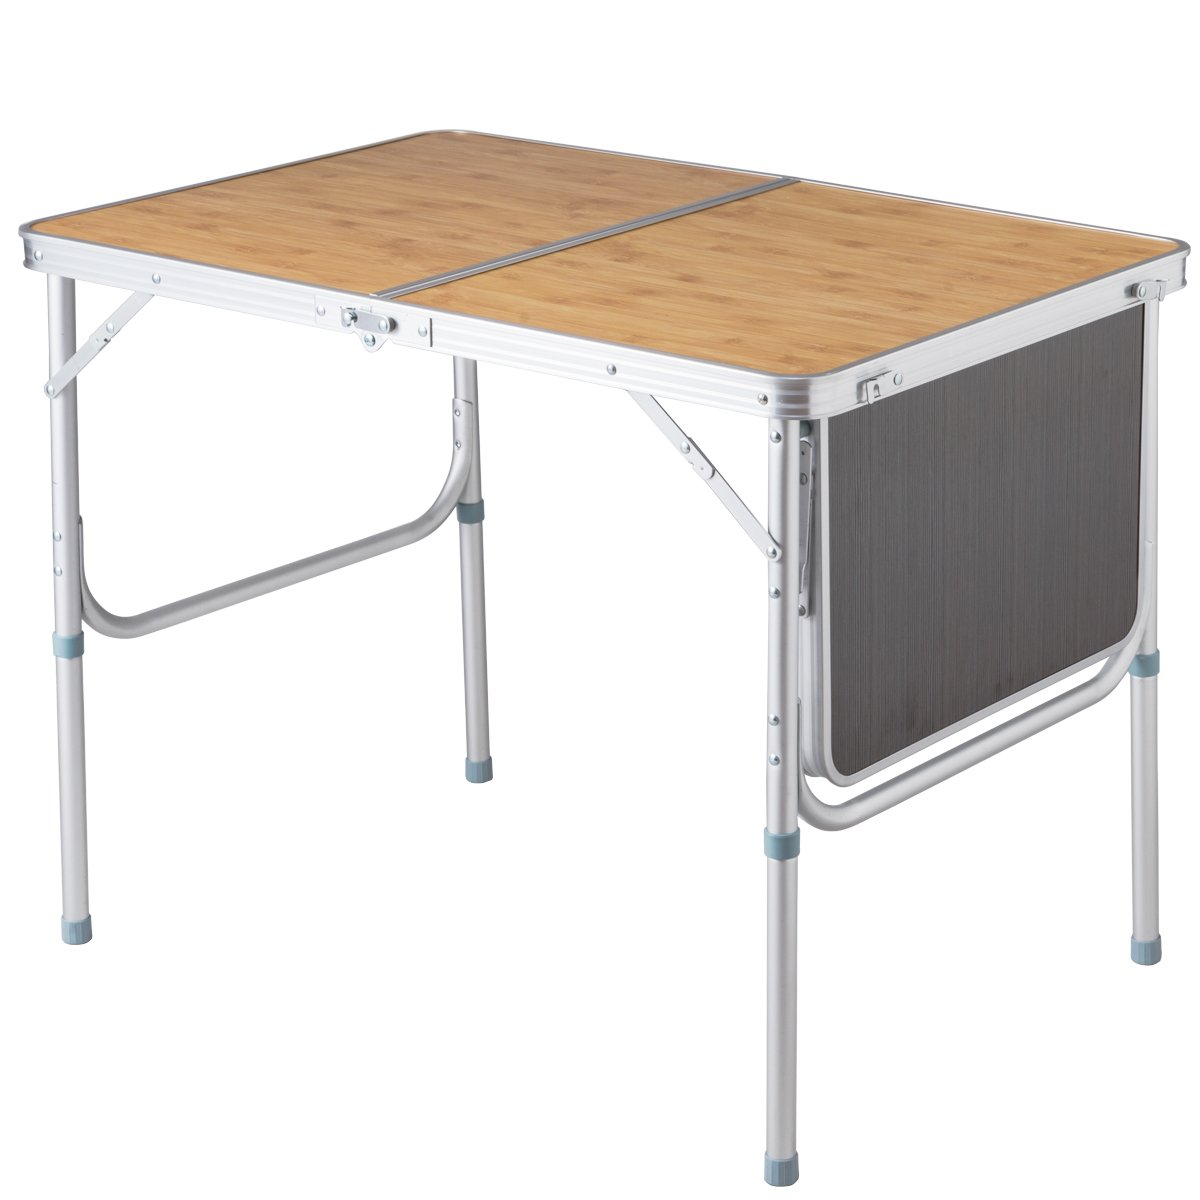 Giantex Portable Aluminum Folding Table Patio Outdoor Picnic Lightweight Indoor Outdoor Party with Stretchable Desktop by Giantex